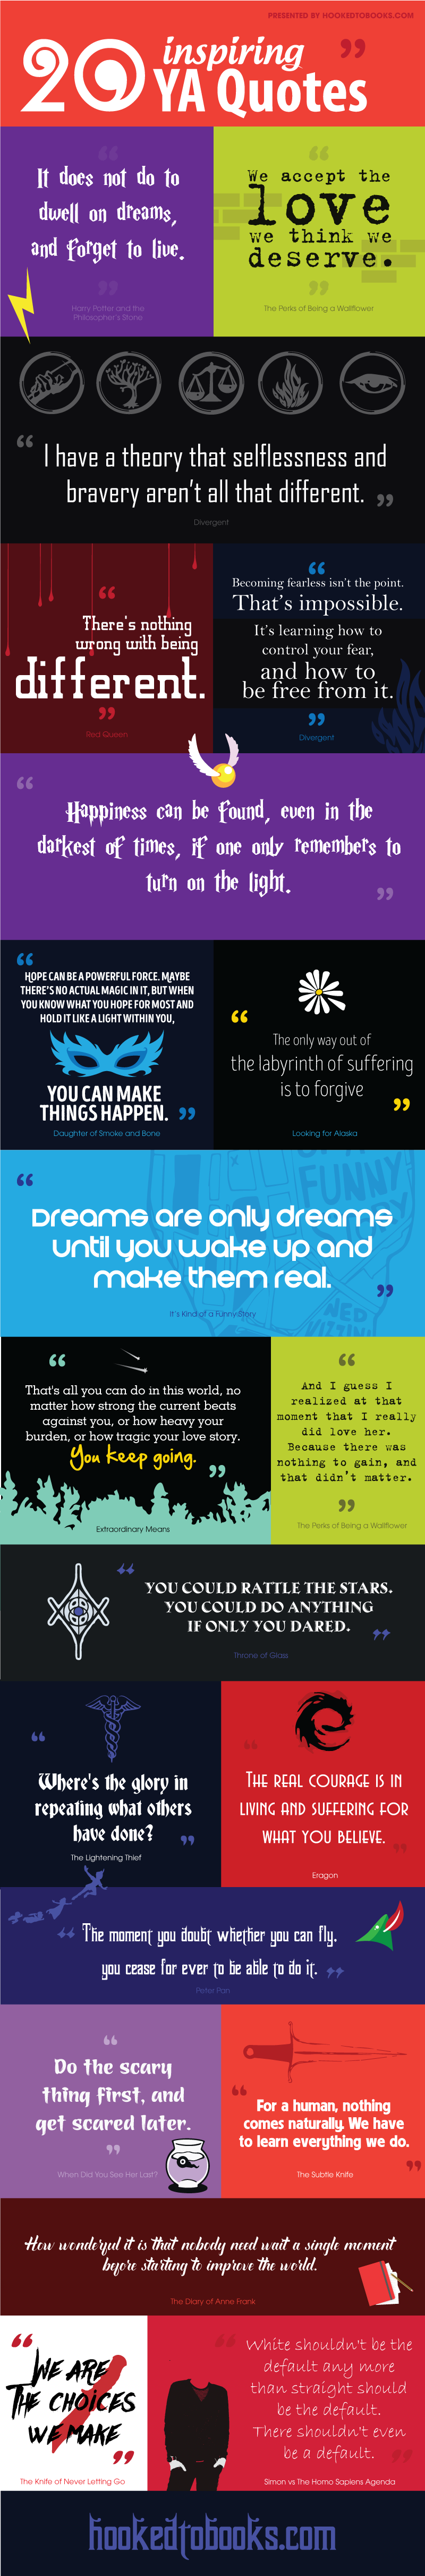 20 Motivational Quotes For YA Book Lovers #Infographic